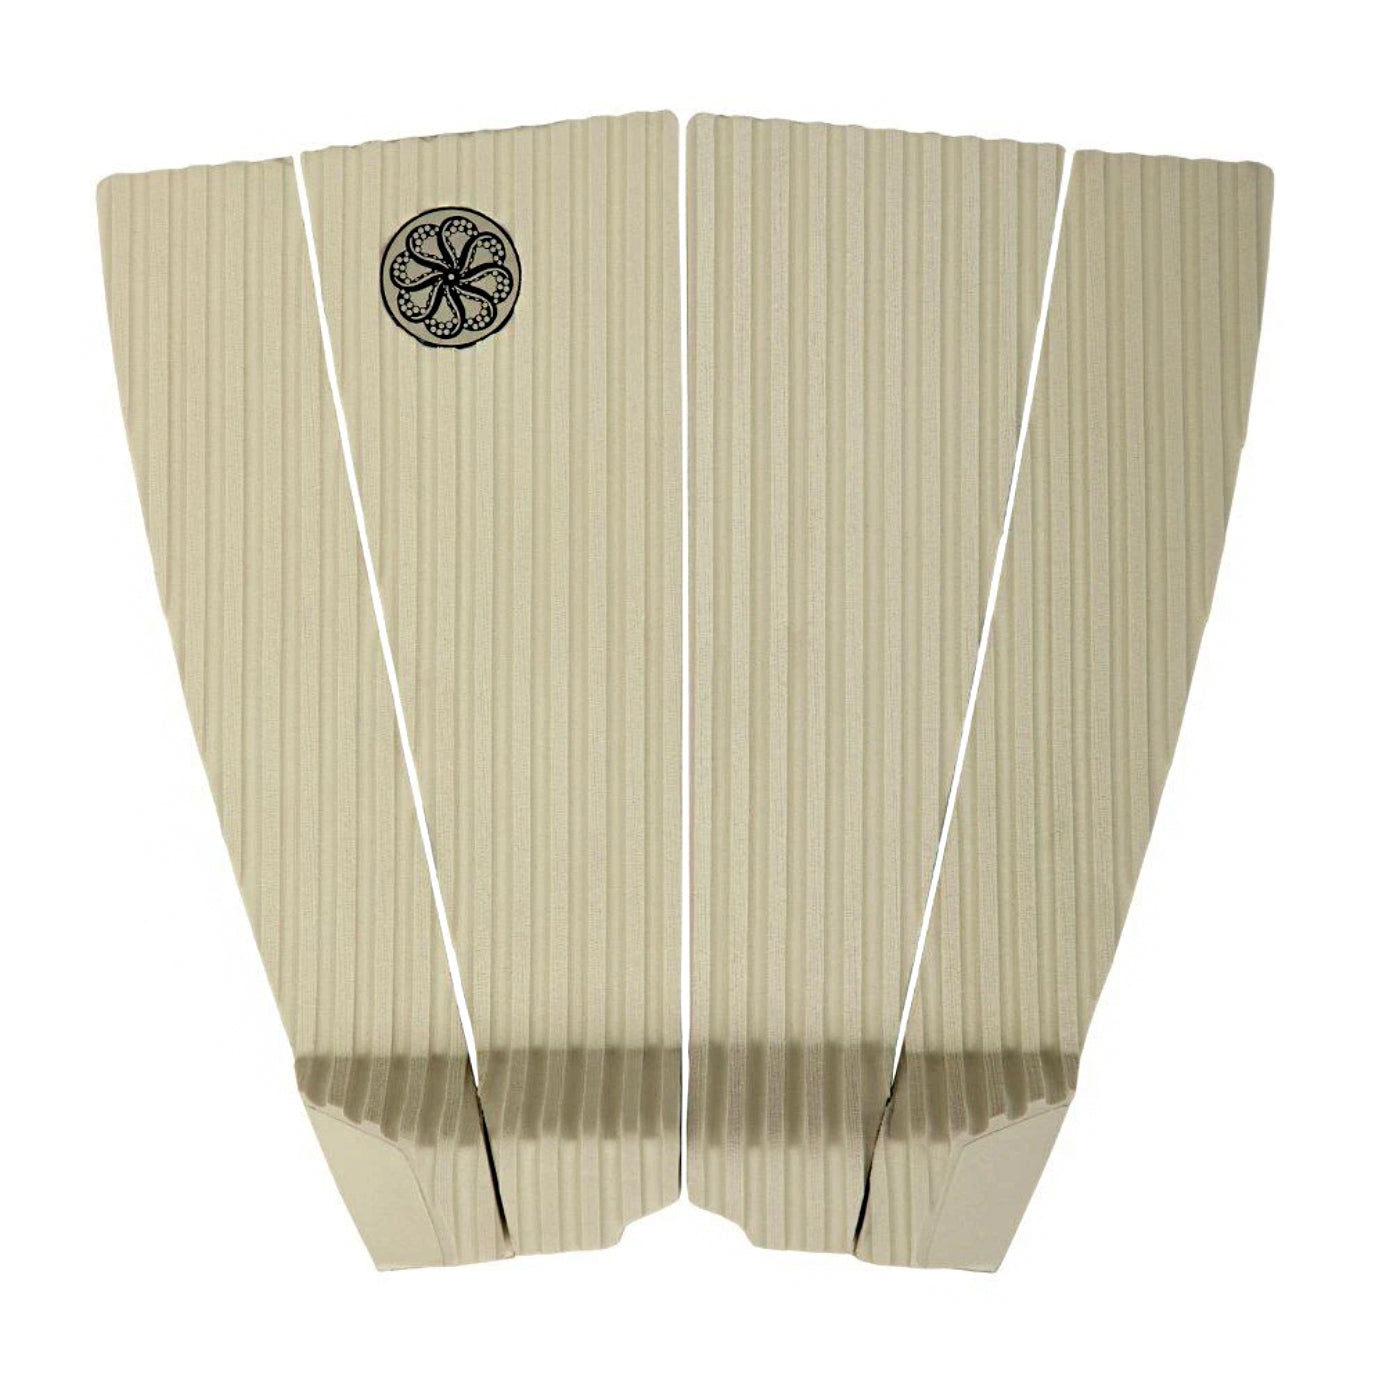 Octopus Mikey February - Corduroy Surfboard Pad - Cream